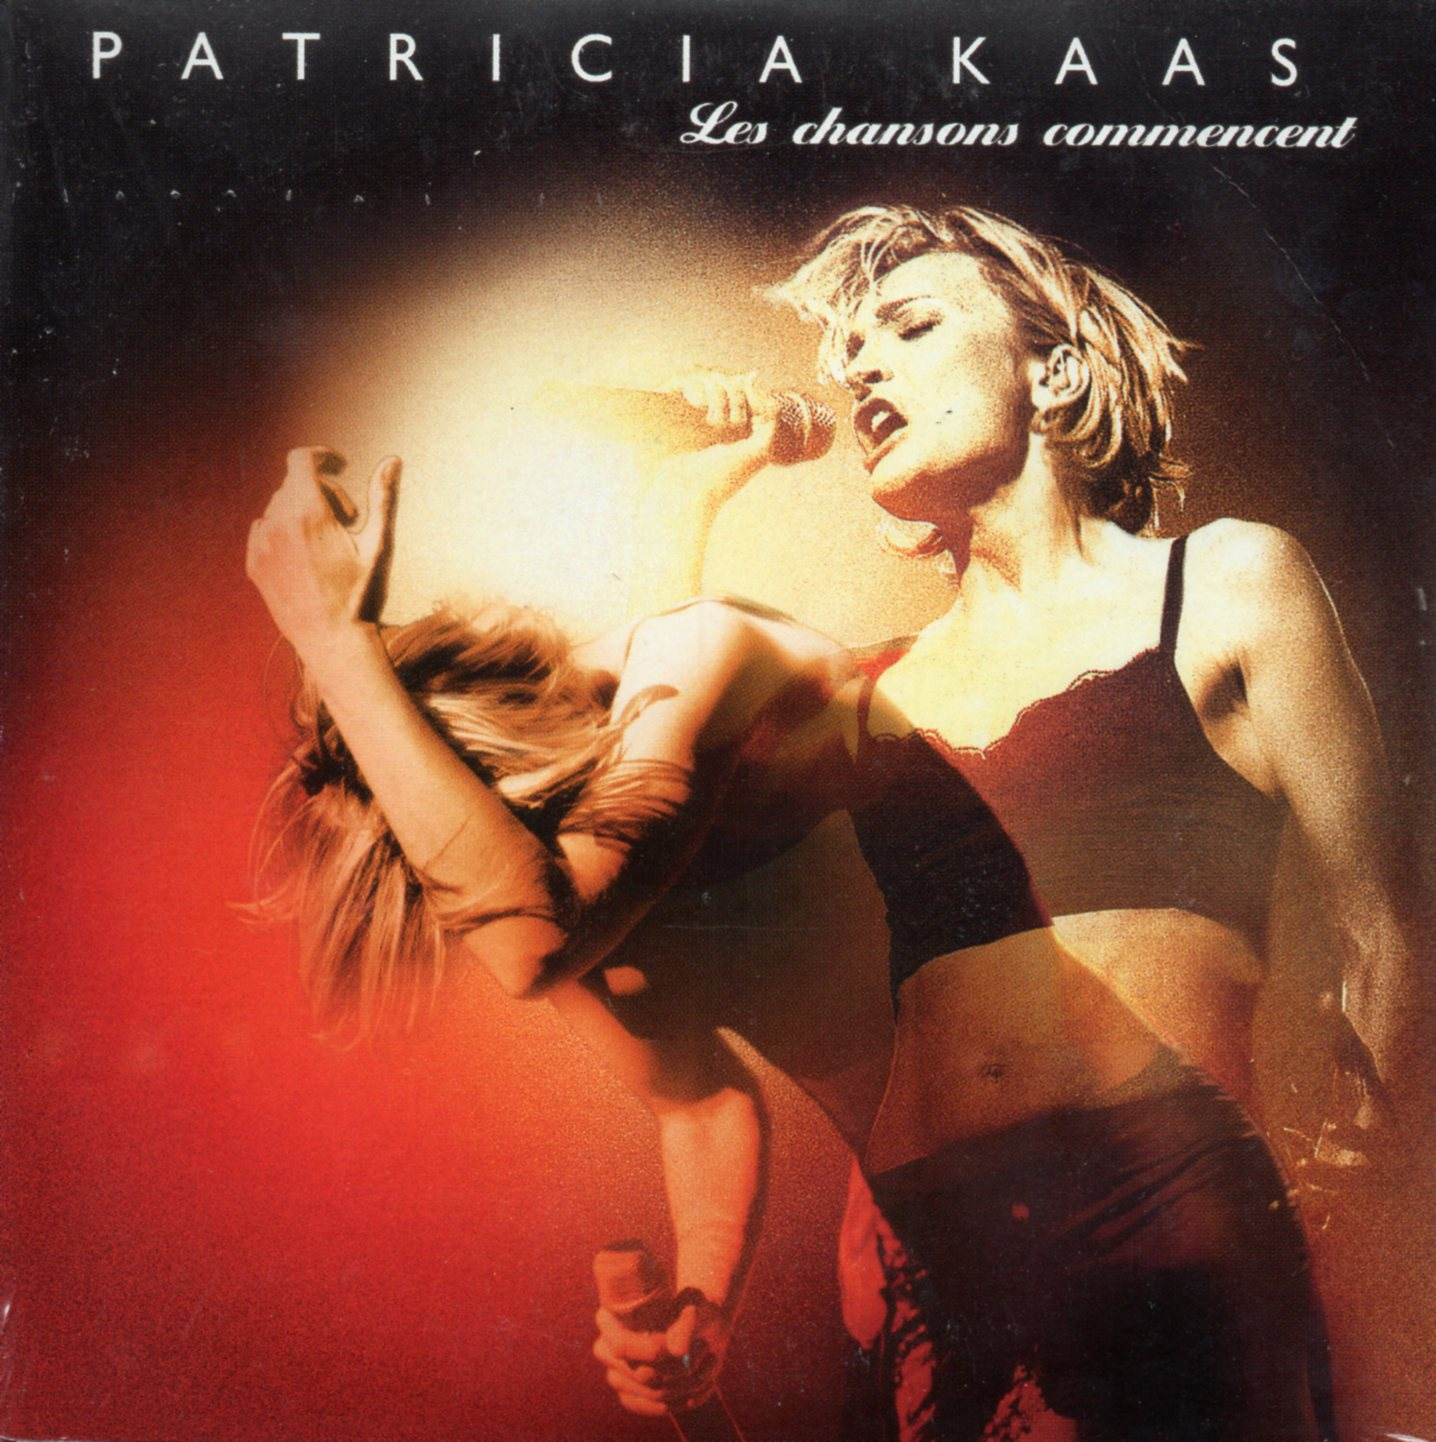 PATRICIA KAAS - Les chansons commencent 3-track CARD SLEEVE - CD single